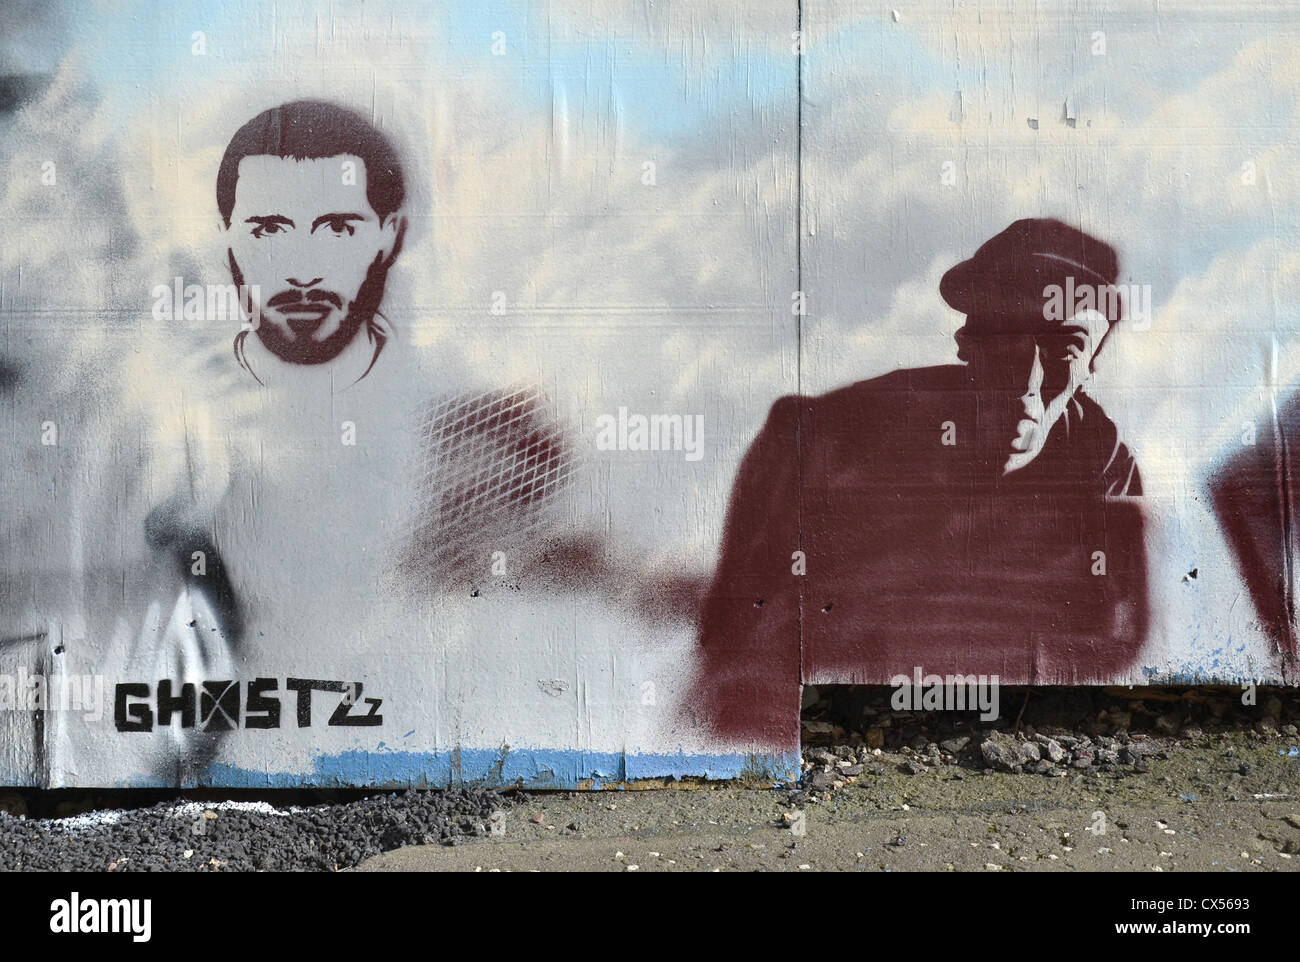 Stencil graffiti on boards on New Street, Edinburgh, Scotland, UK. - Stock Image